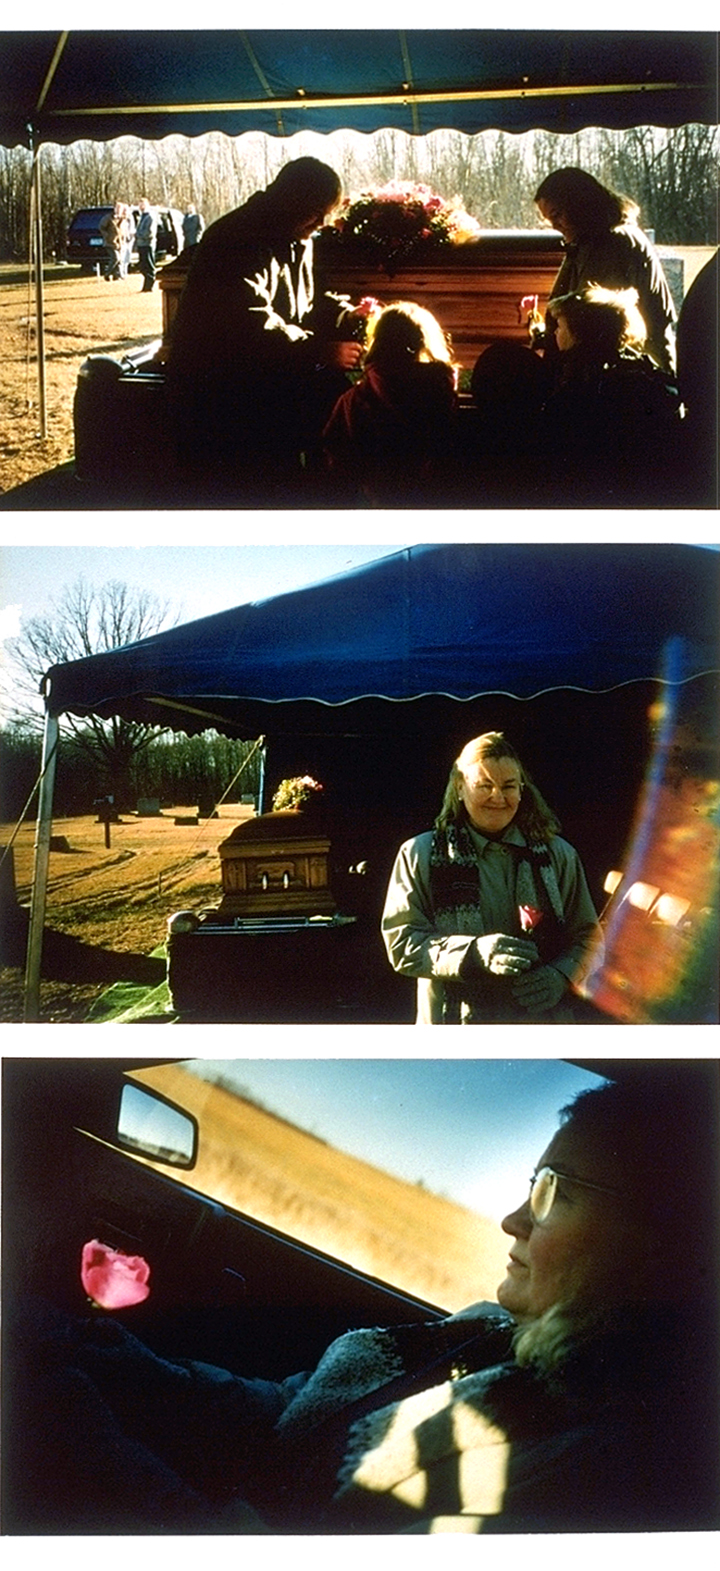 T1_141_pk161.2,3 94 B6.51 0003_cd 3258 files_3258-0079_Lg.jpg